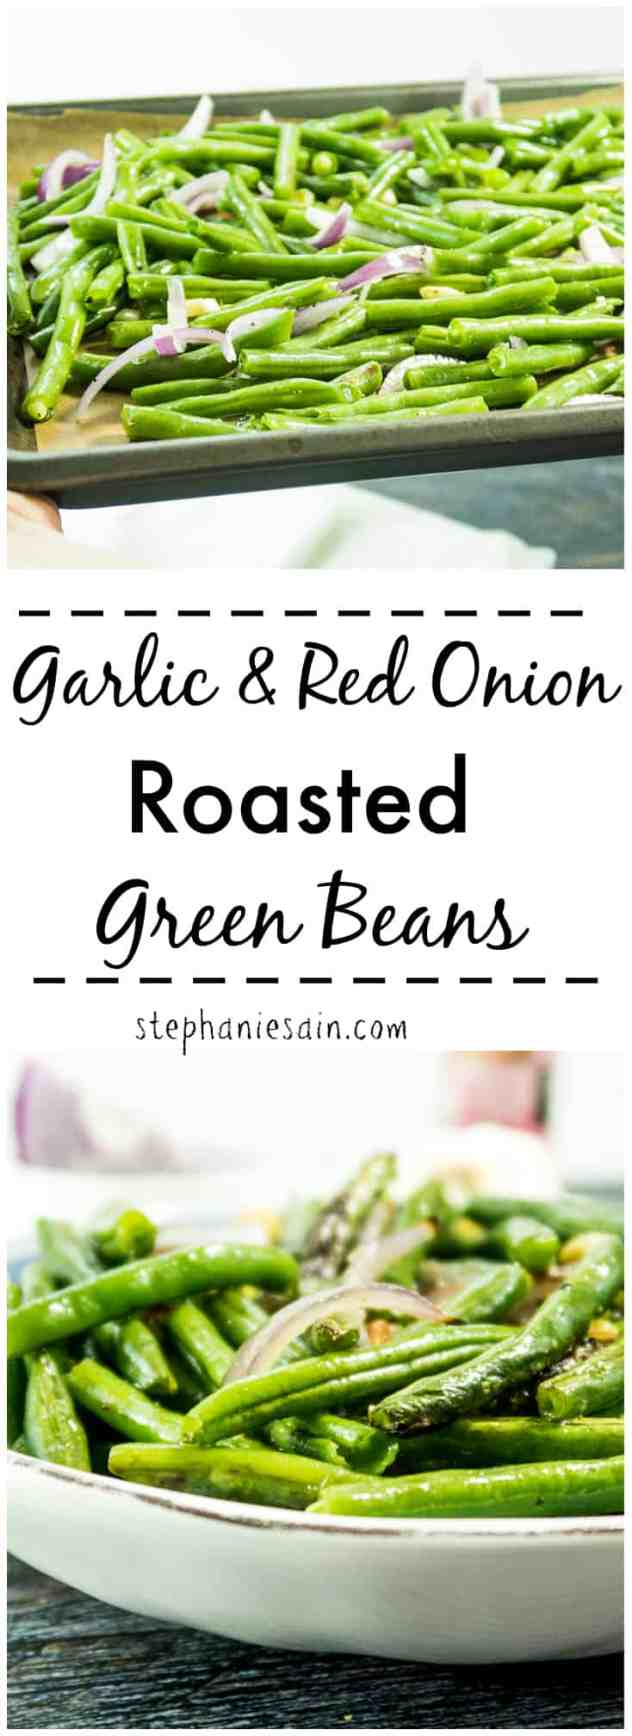 These Garlic and Red Onion Roasted Green Beans are super Easy to prepare, delicious and Only require 5 ingredients. The perfect side for almost anything. Vegan & Gluten Free.